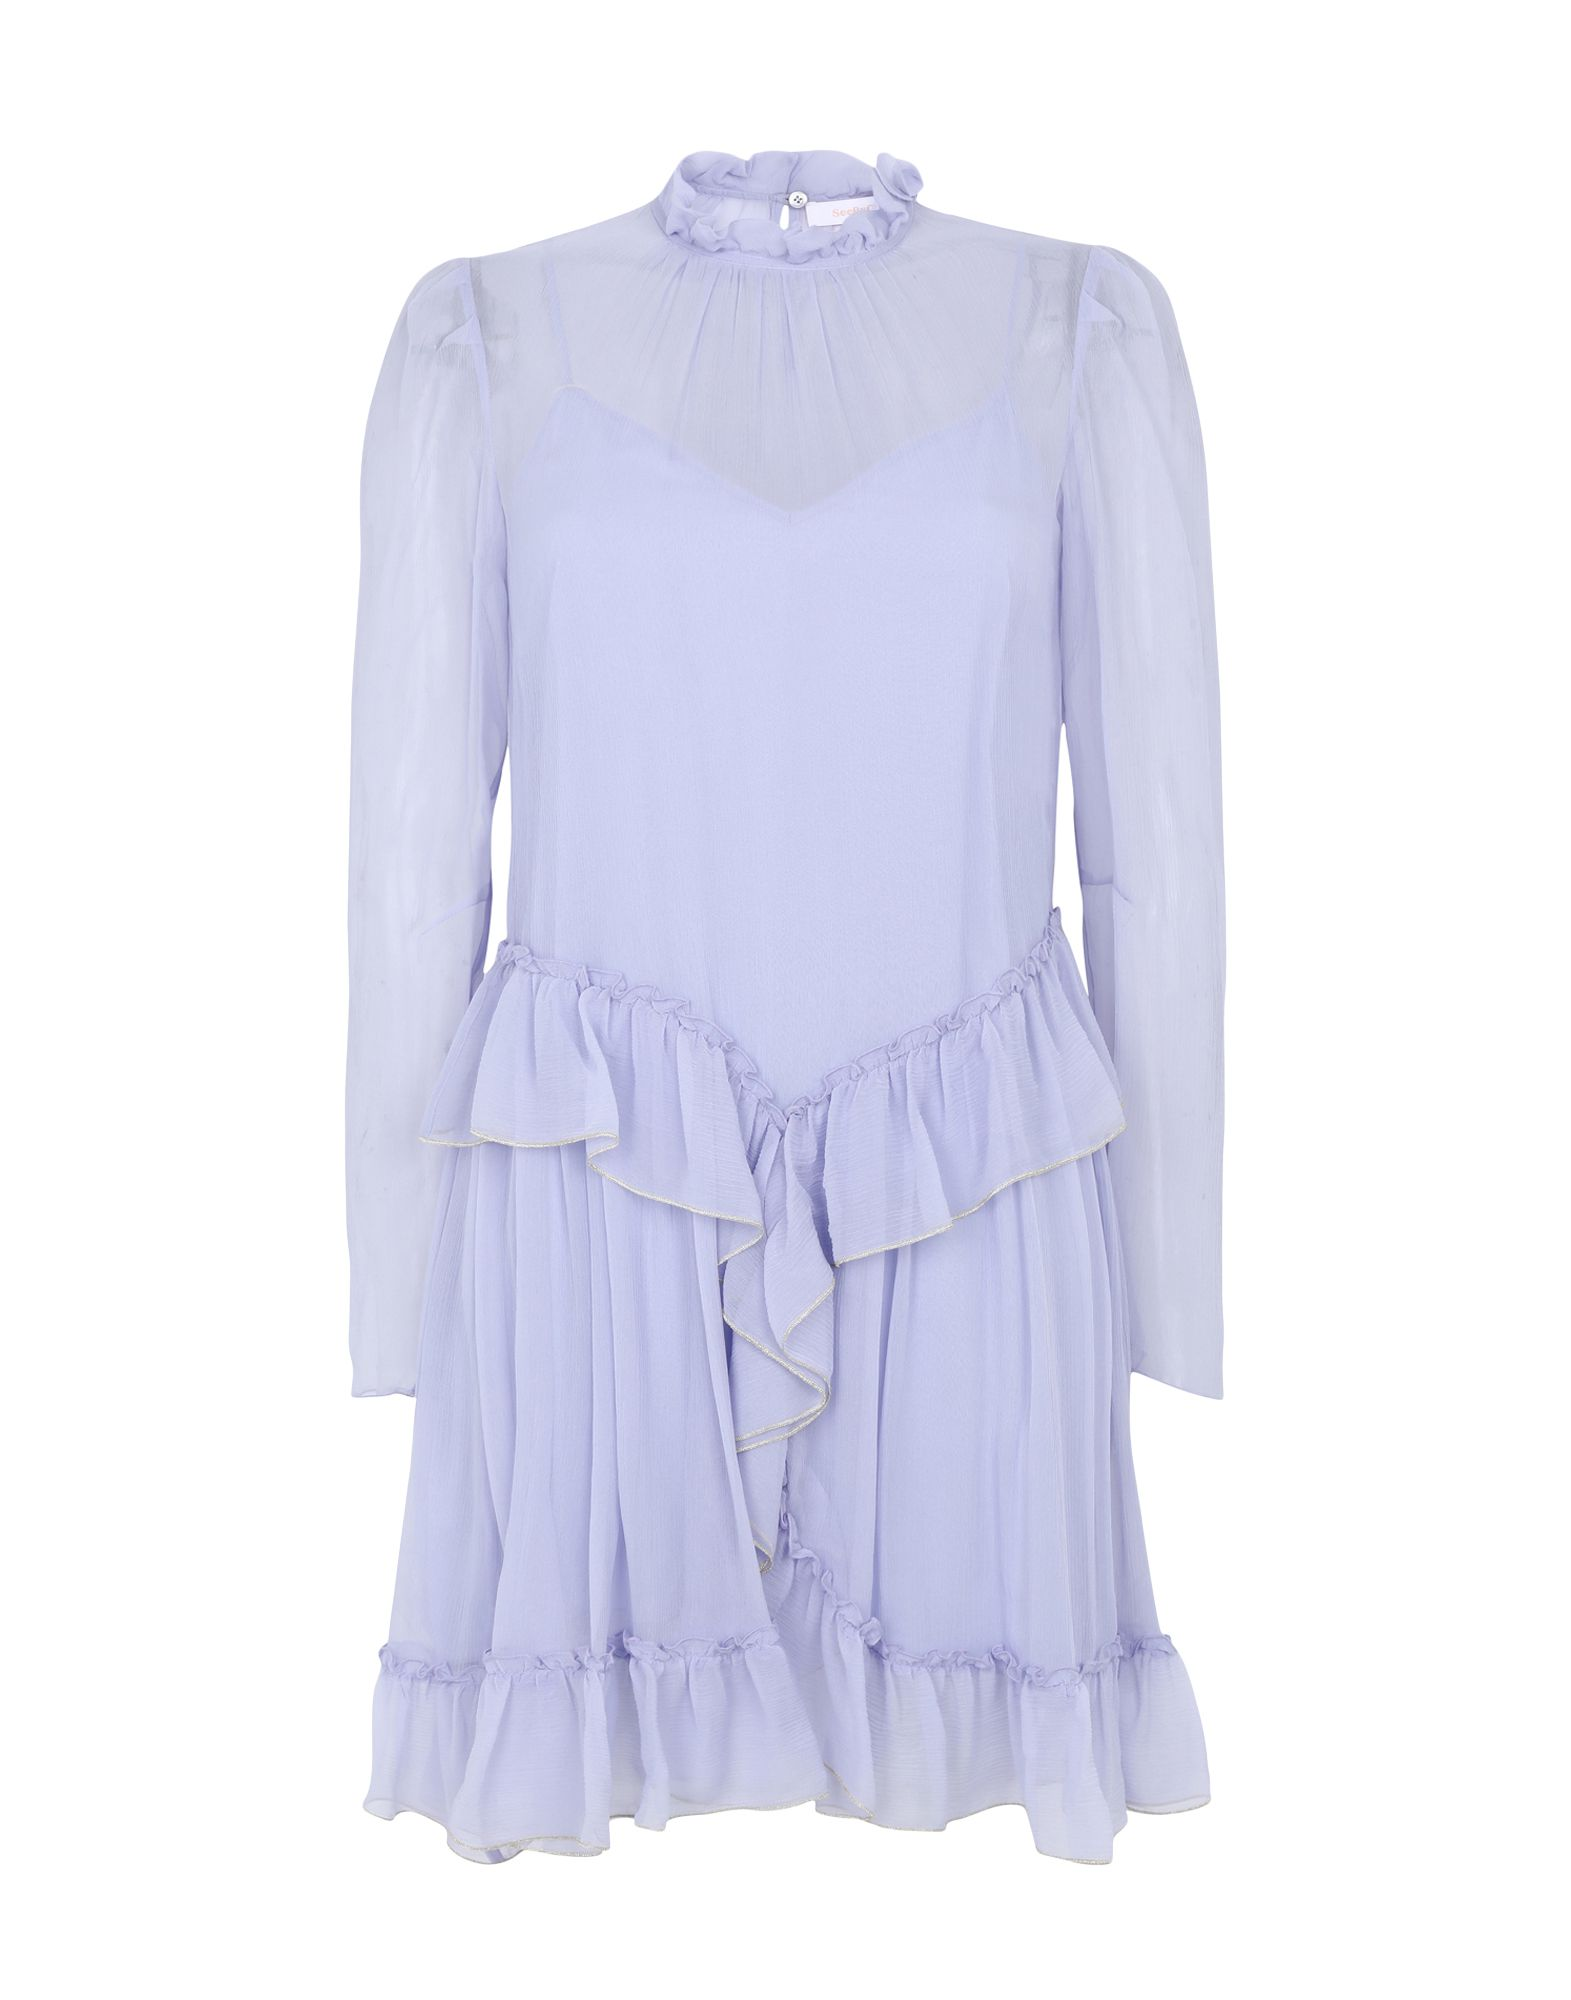 SEE BY CHLOÉ Короткое платье braless see through backless babydoll